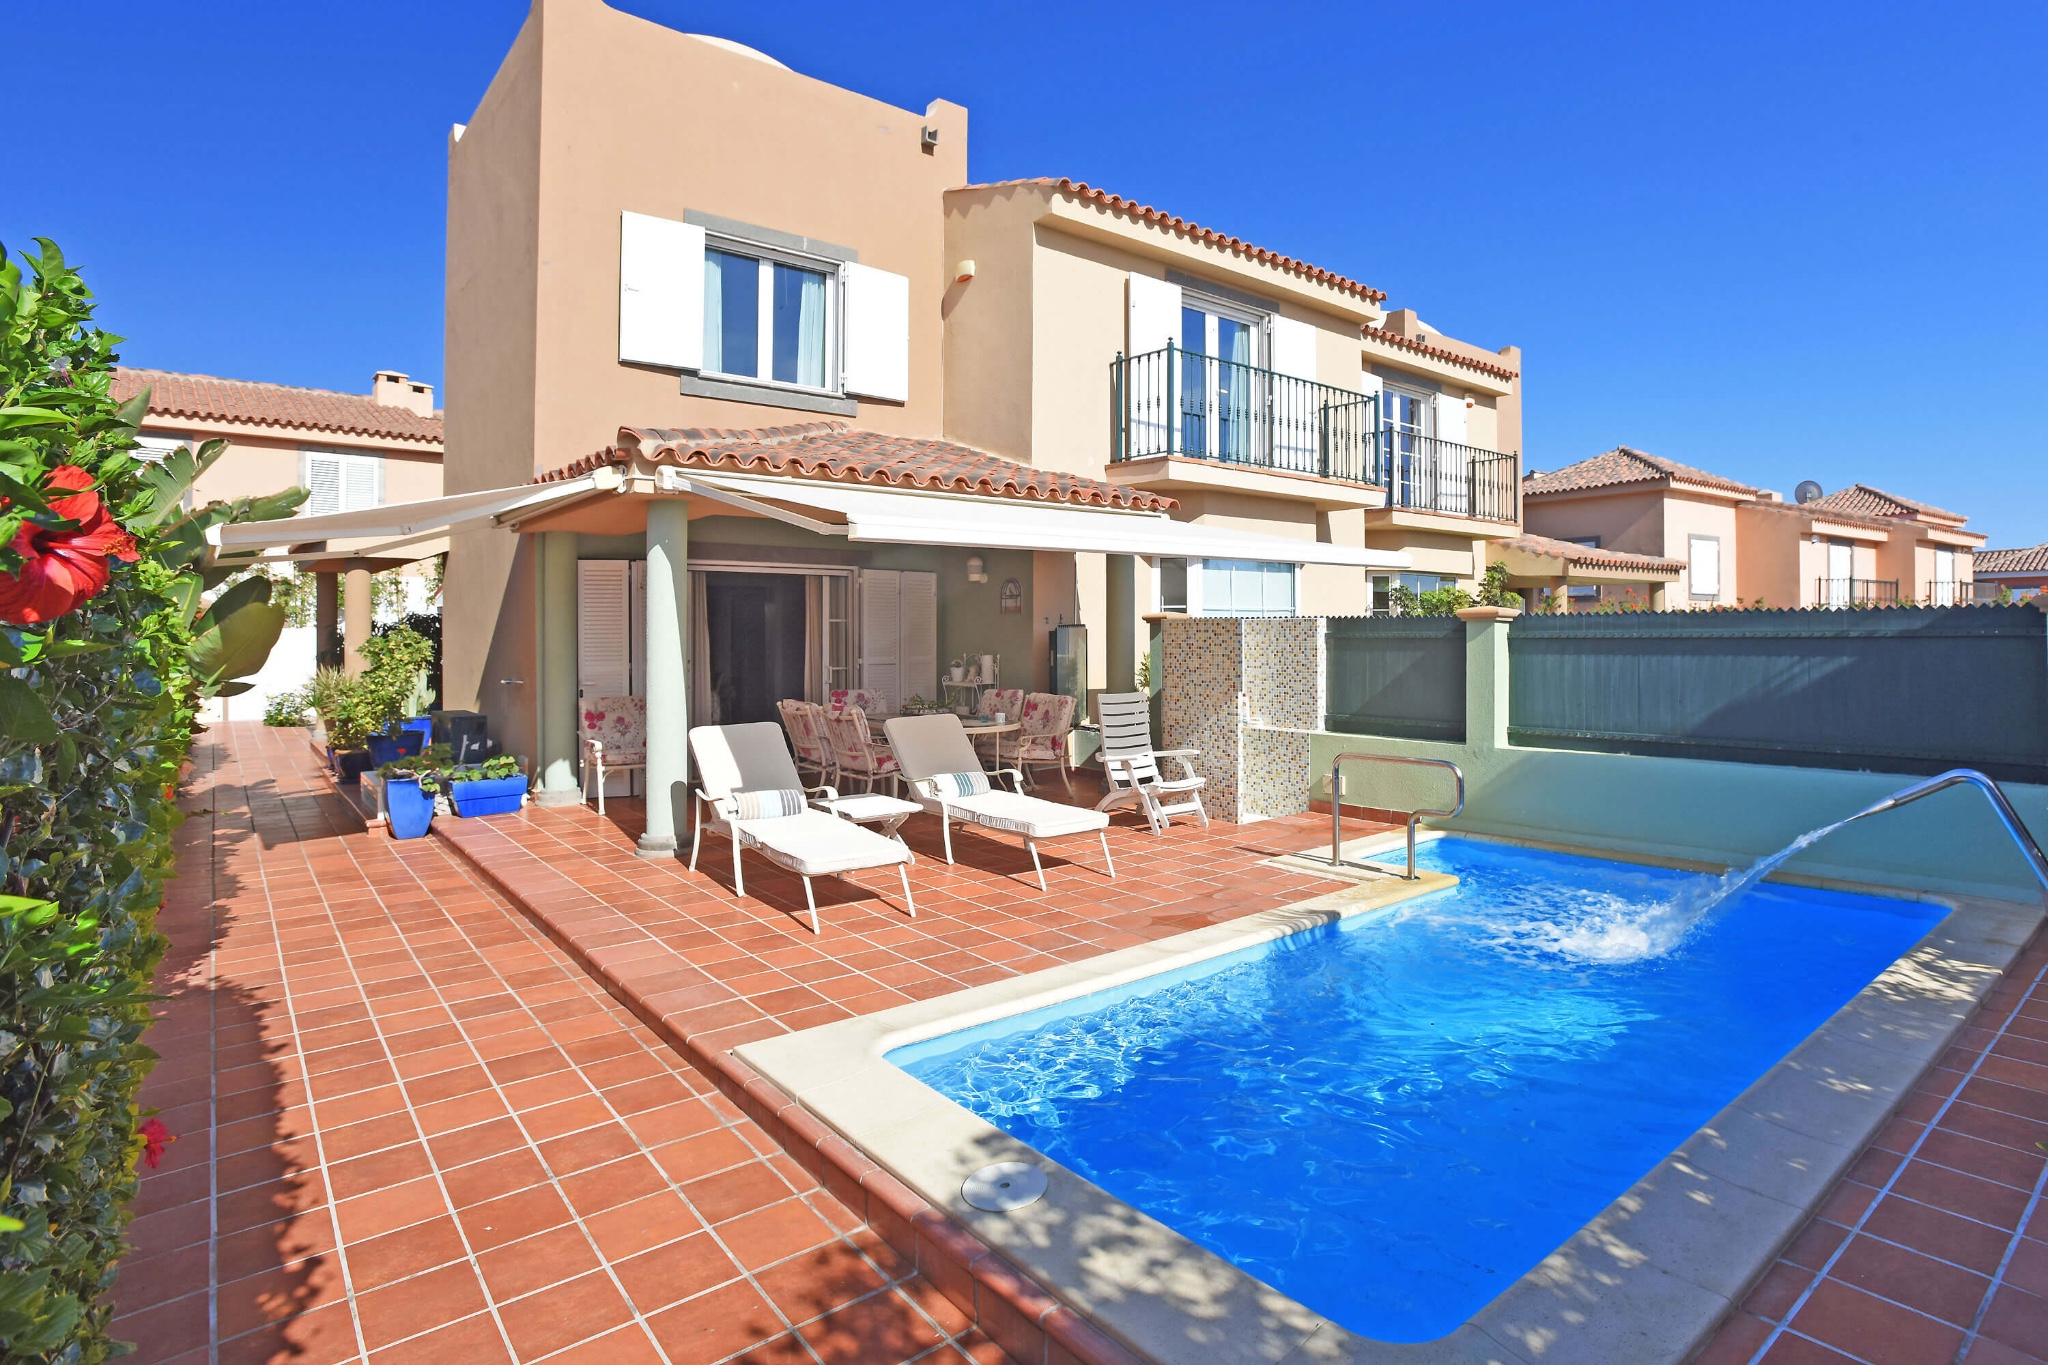 Very comfortably furnished holiday villa with private pool in a privileged location in Meloneras, a few steps from the seafront